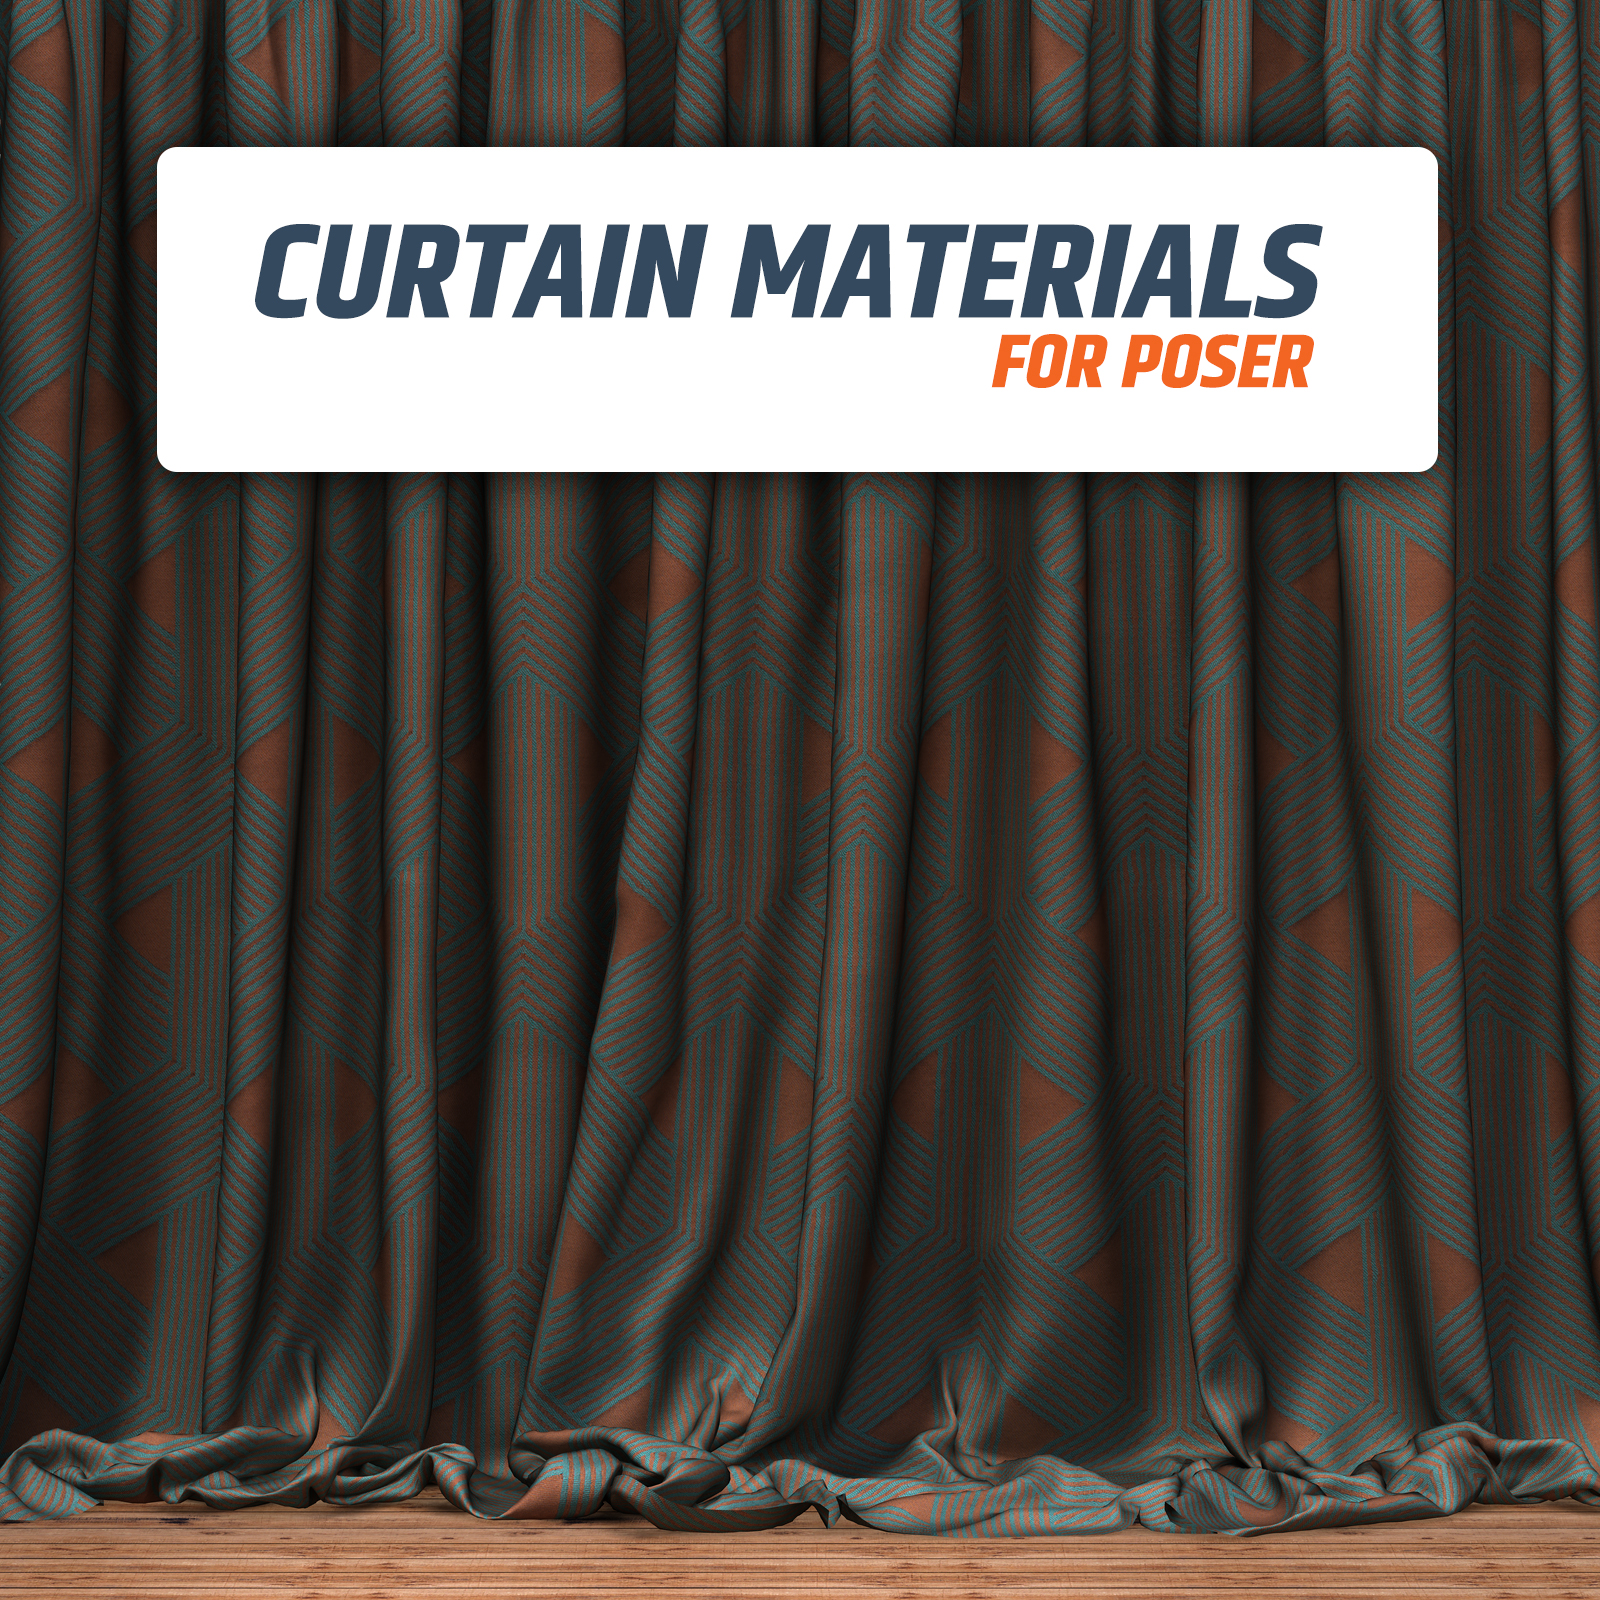 Materials for Curtains :: Poser Materials